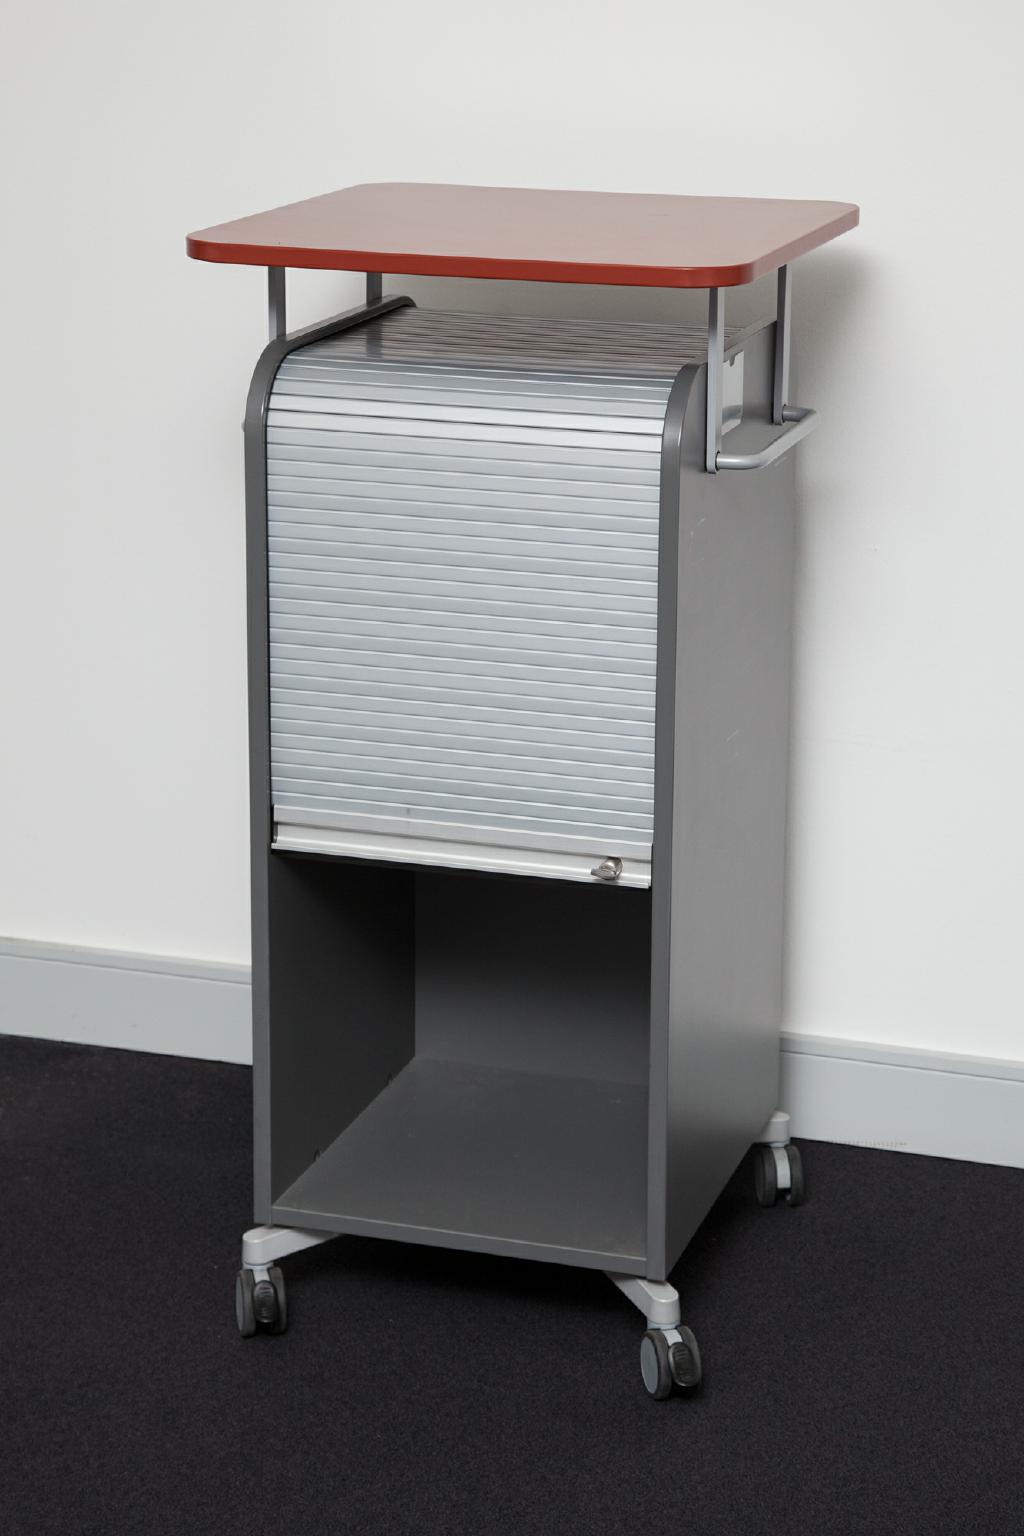 Bene Personalcontainer / Aktencaddy